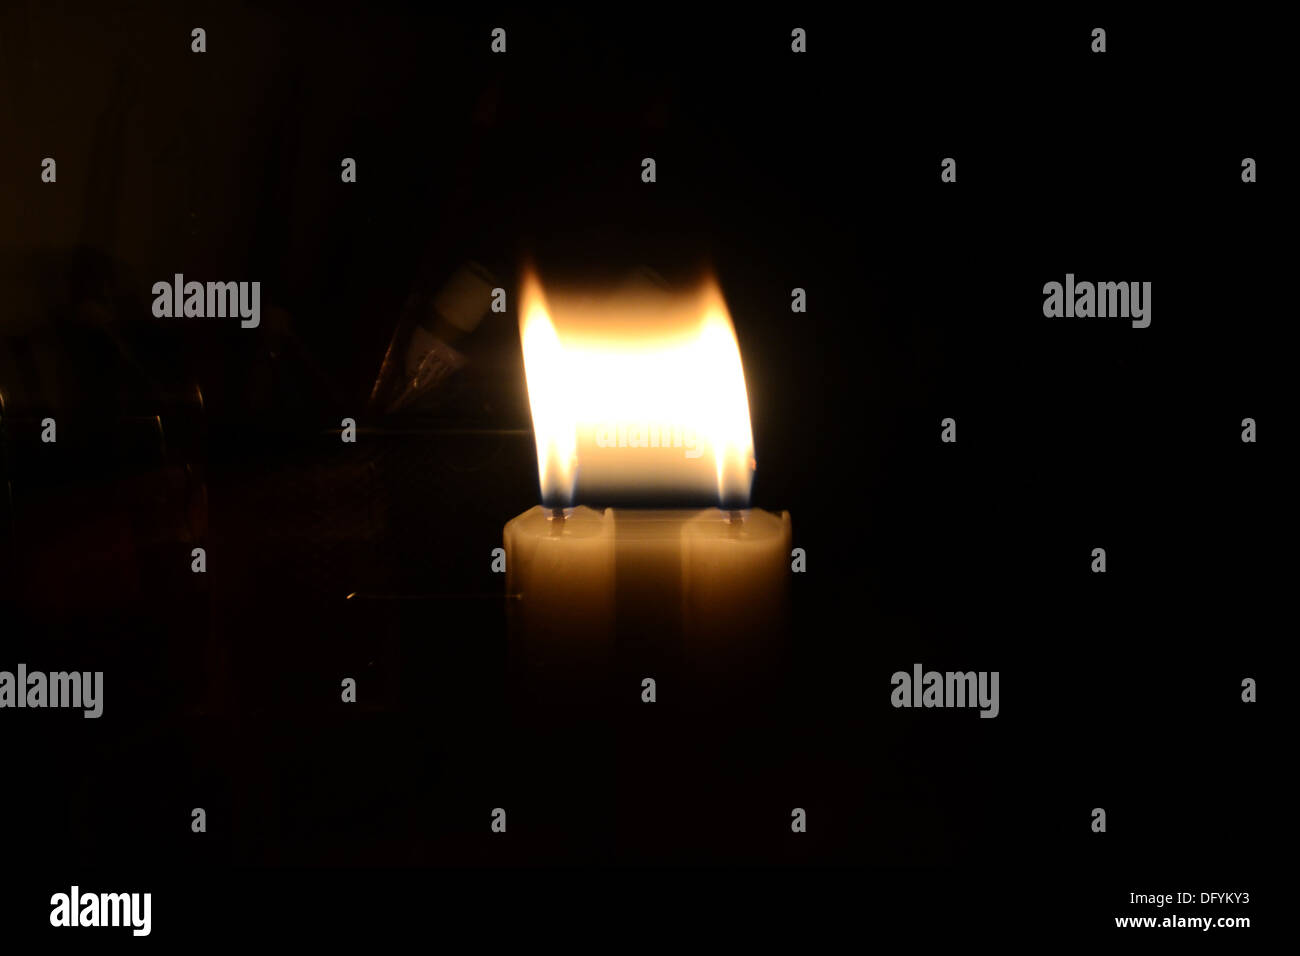 Experimenting with a candle flame, giving it a replicated look - Stock Image